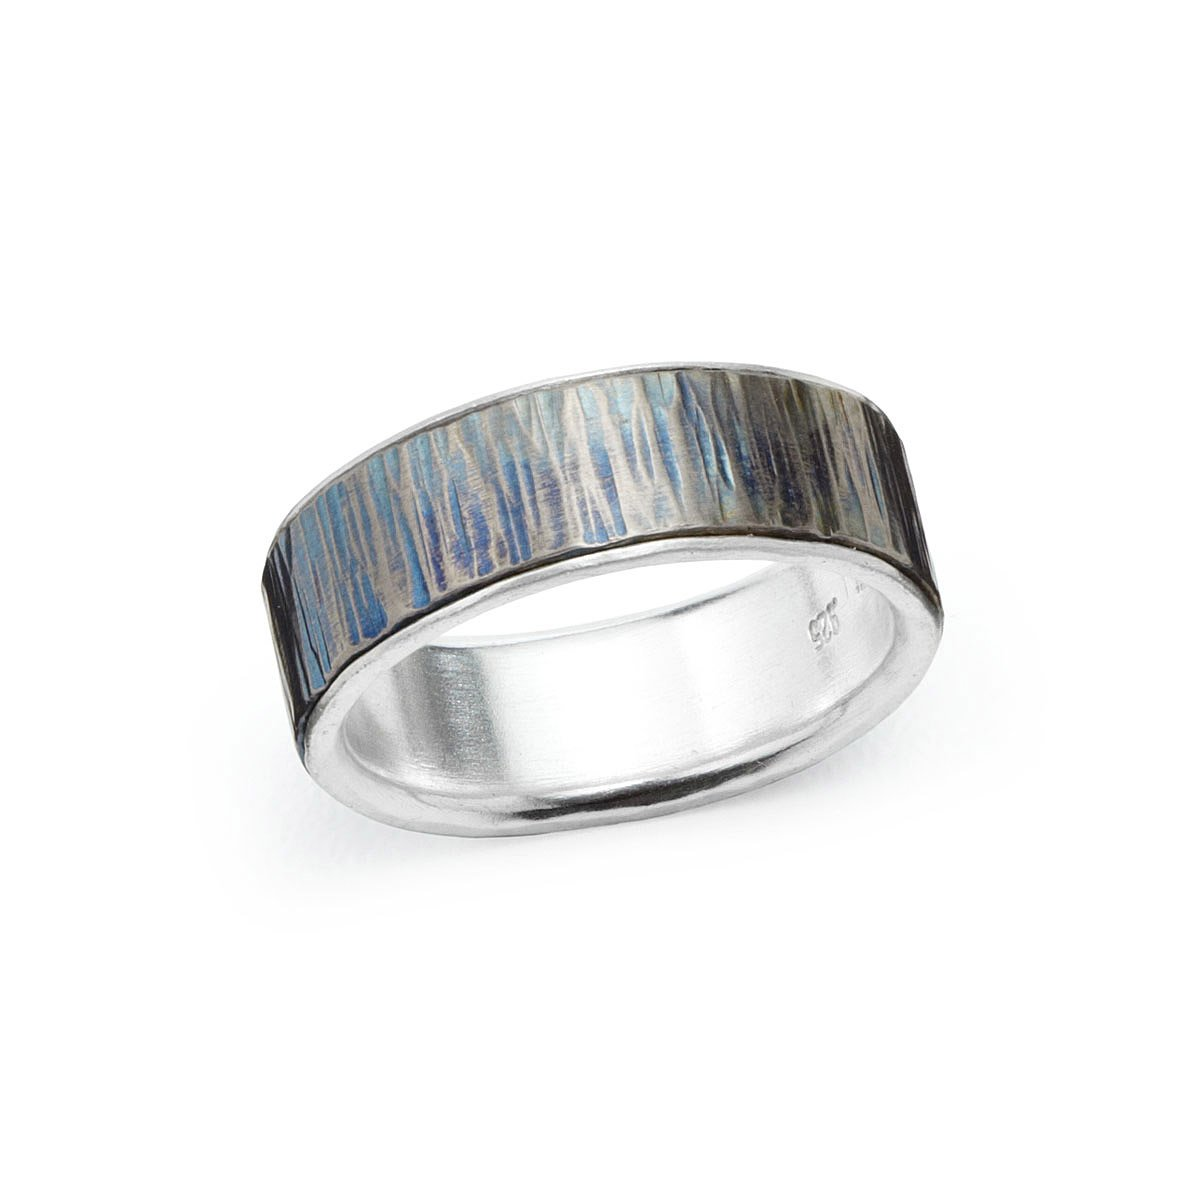 mountain titanium rings wedding or bands spo products w manly band ring the tungsten zebra wood man